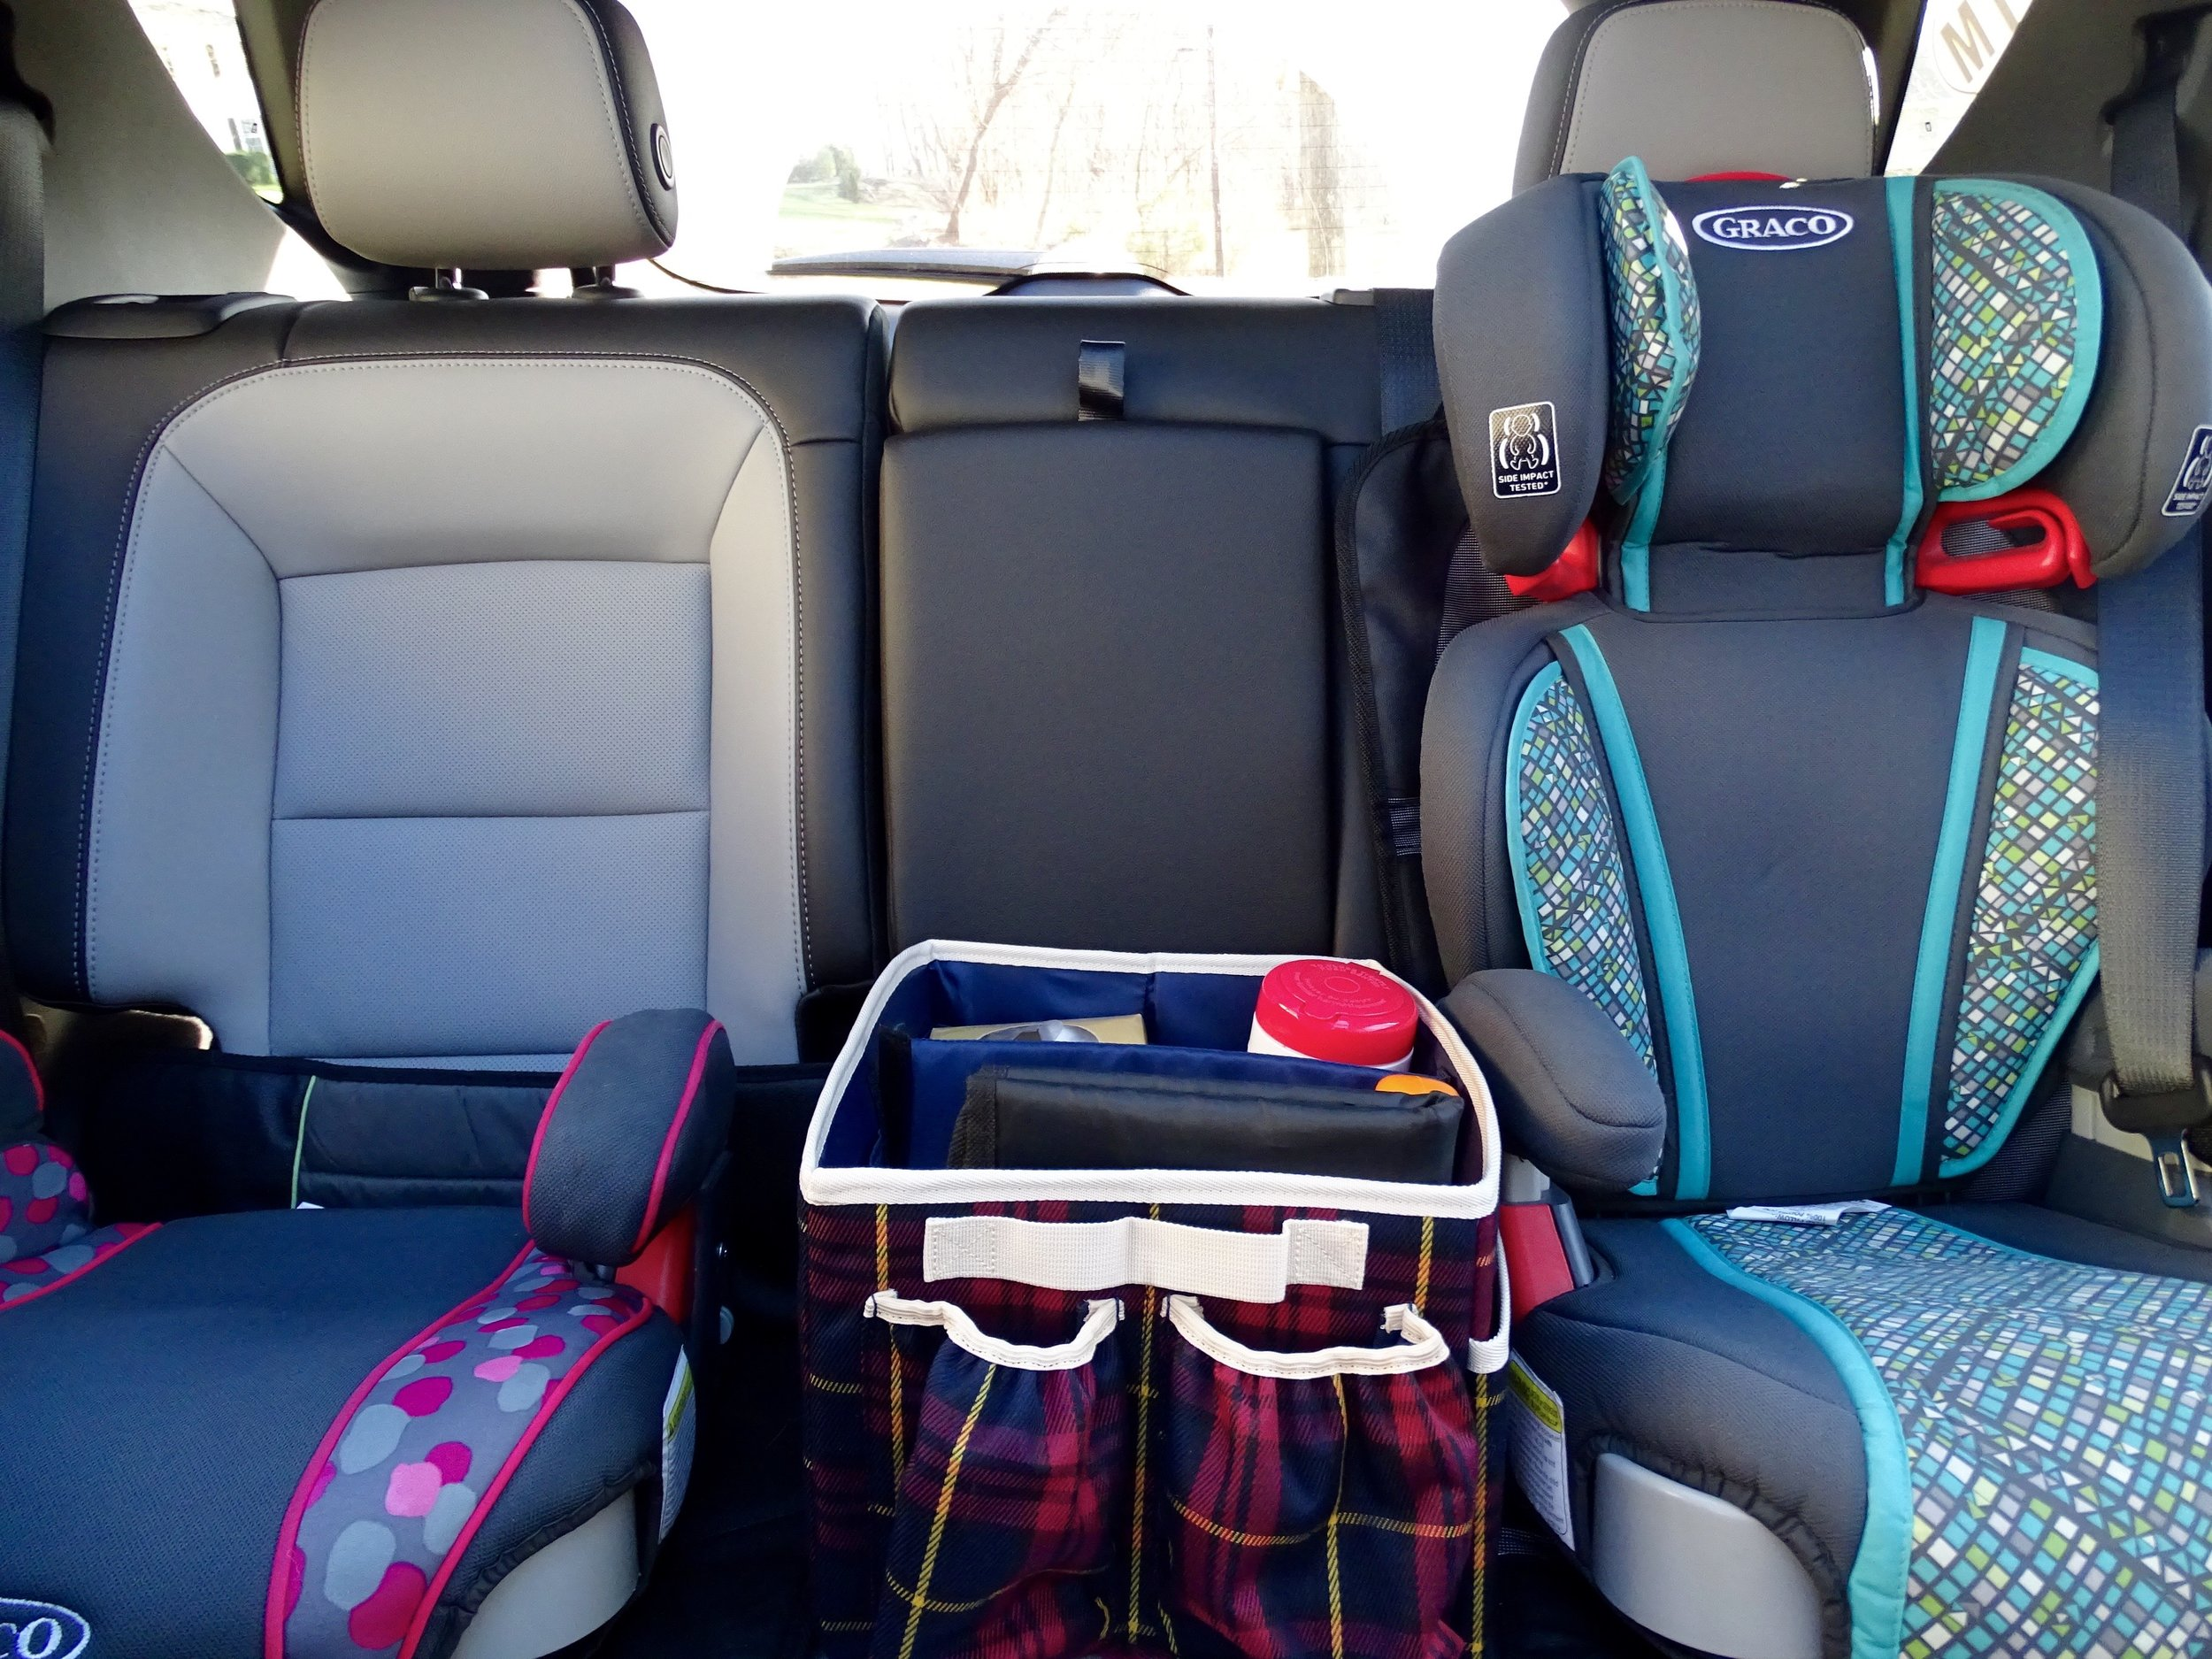 I keep our car organizer stocked with tissues, wipes, a first aid kit, and sunscreen.